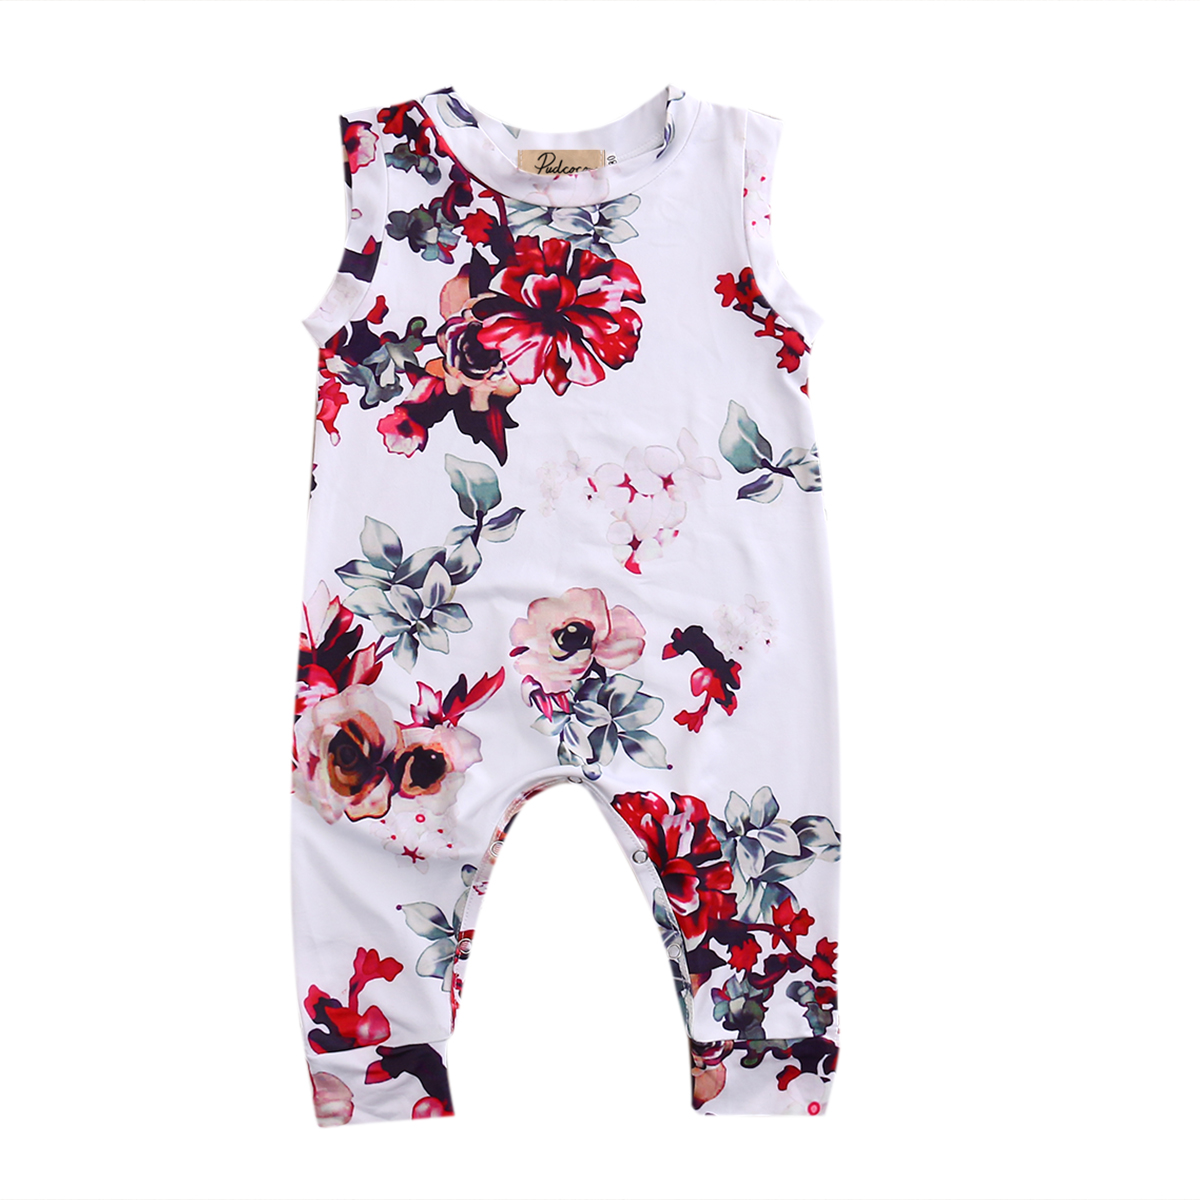 Summer Infant Newborn Kids Summer Toddler Baby Boys Girls Romper Outfits Sunsuit Jumpsuit Cotton Clothes infant toddler baby kids boys girls pocket jumpsuit long sleeve rompers hats kids warm outfits set 0 24m